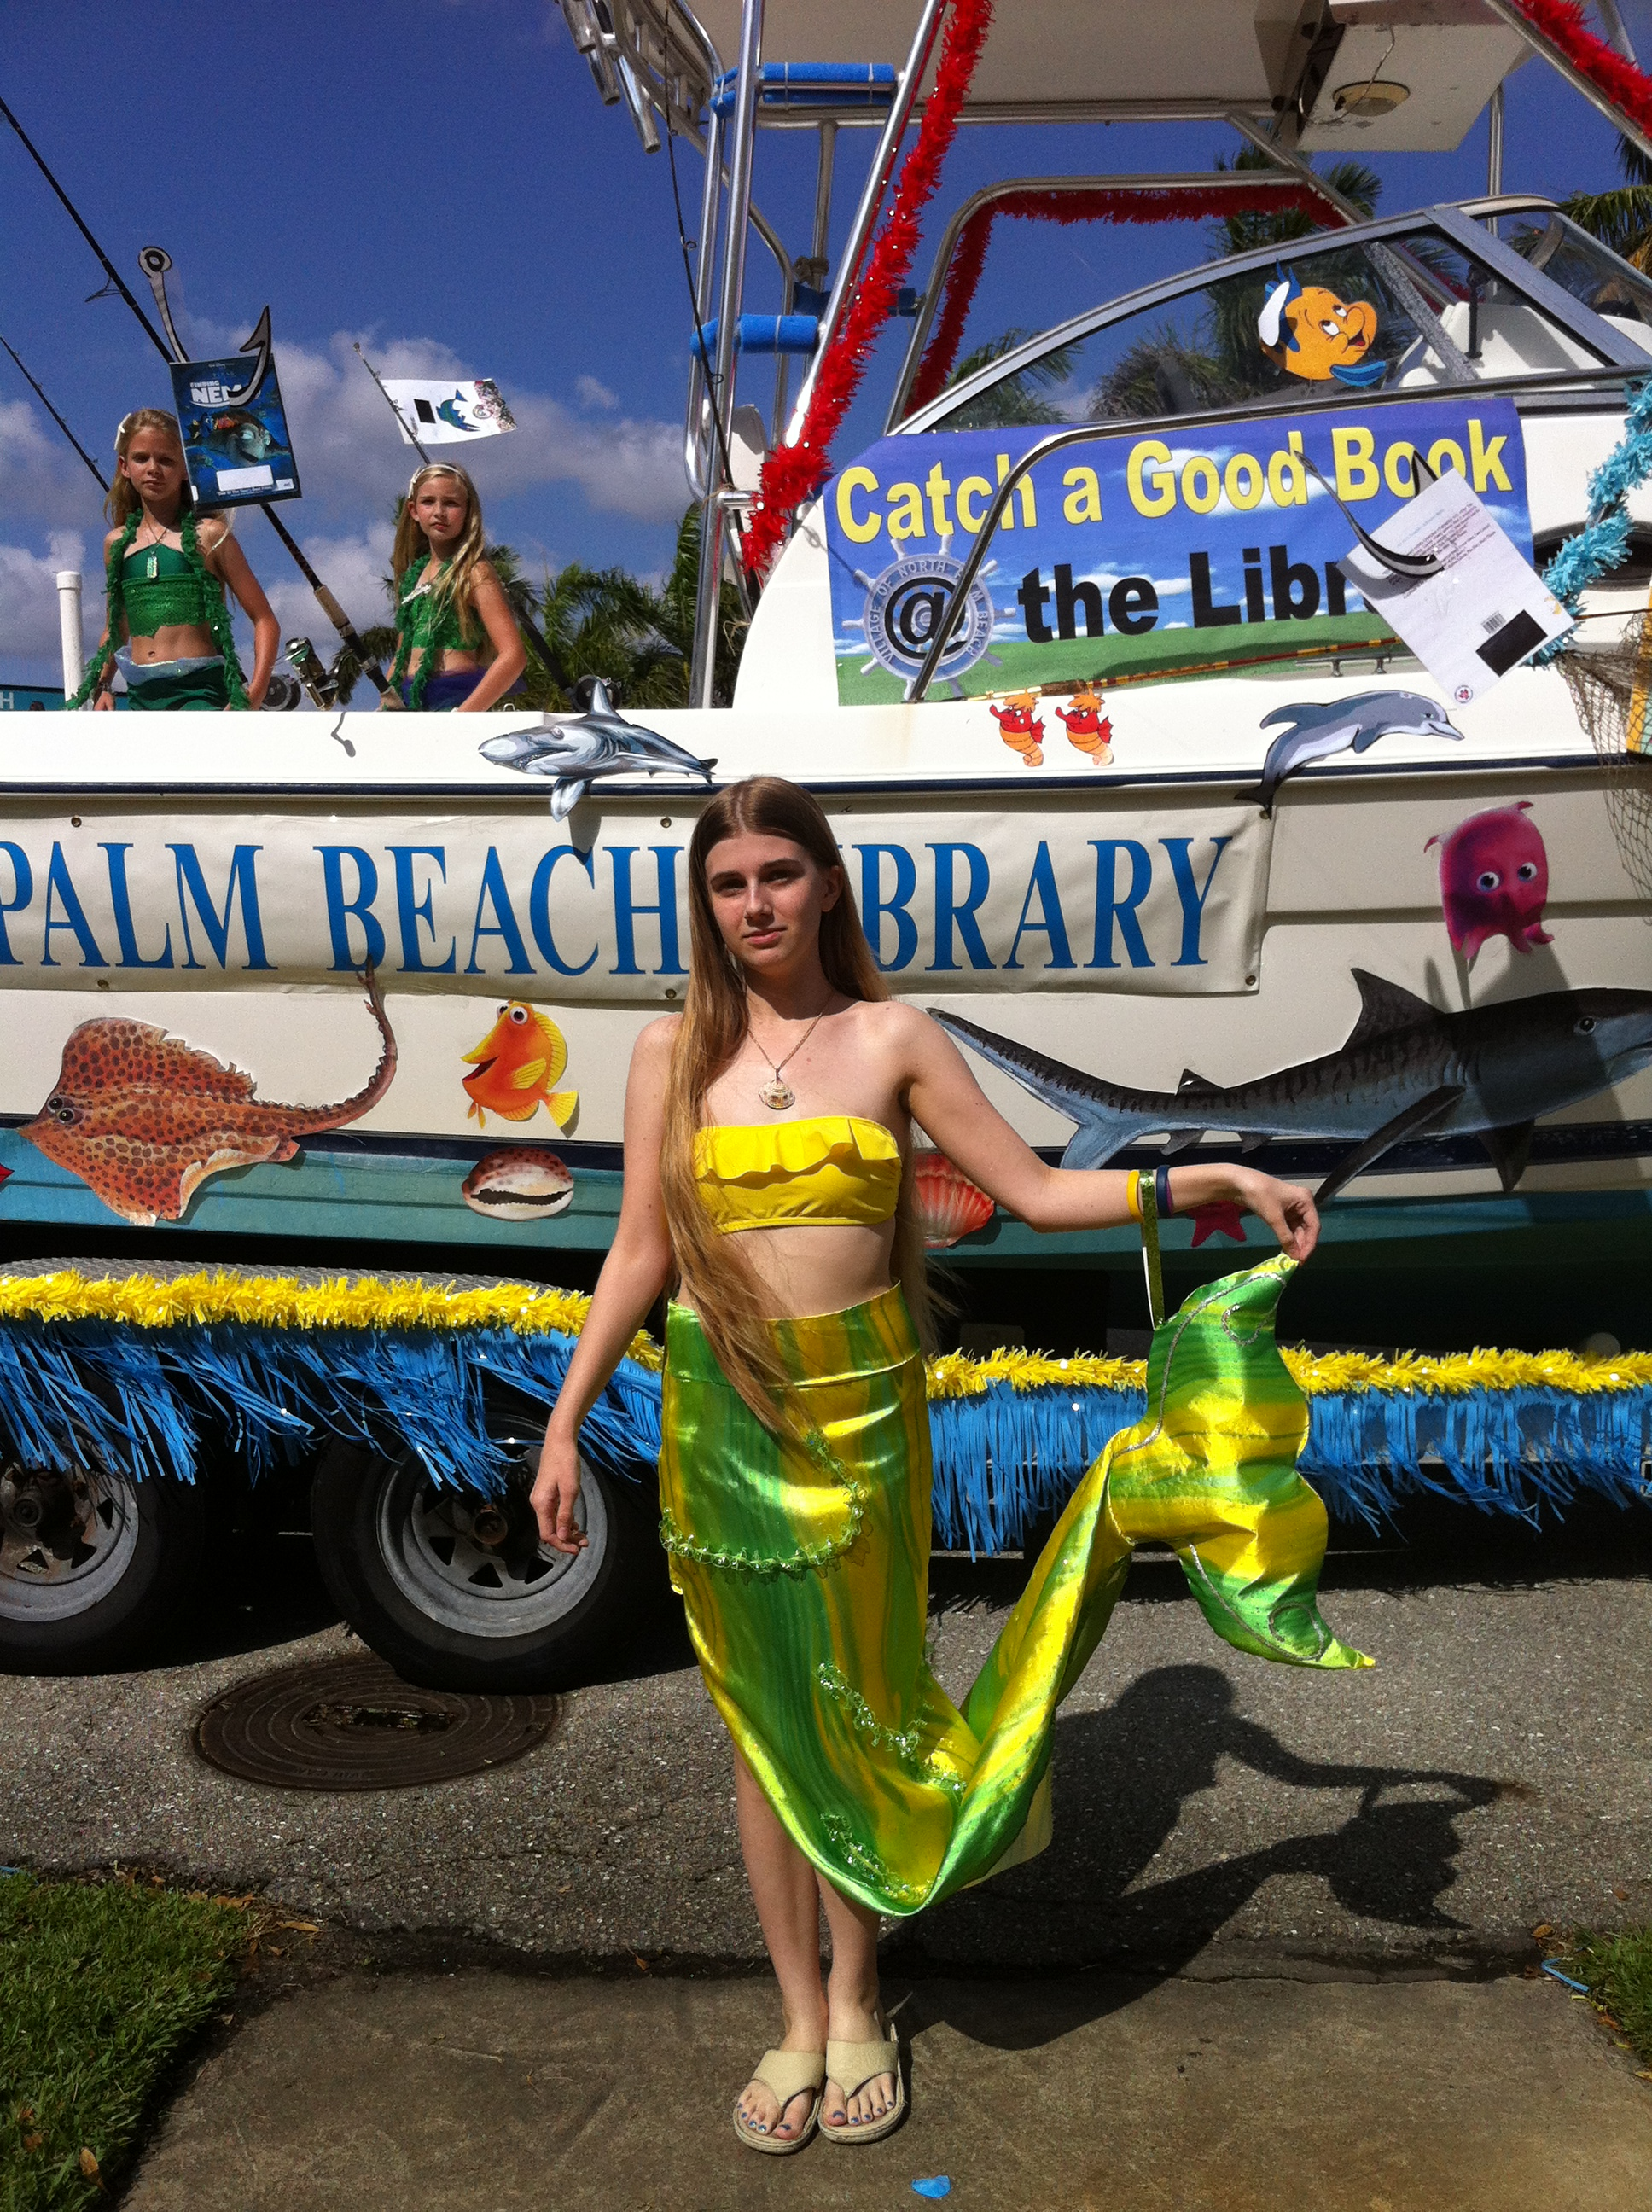 Mermaid stands in front of the float